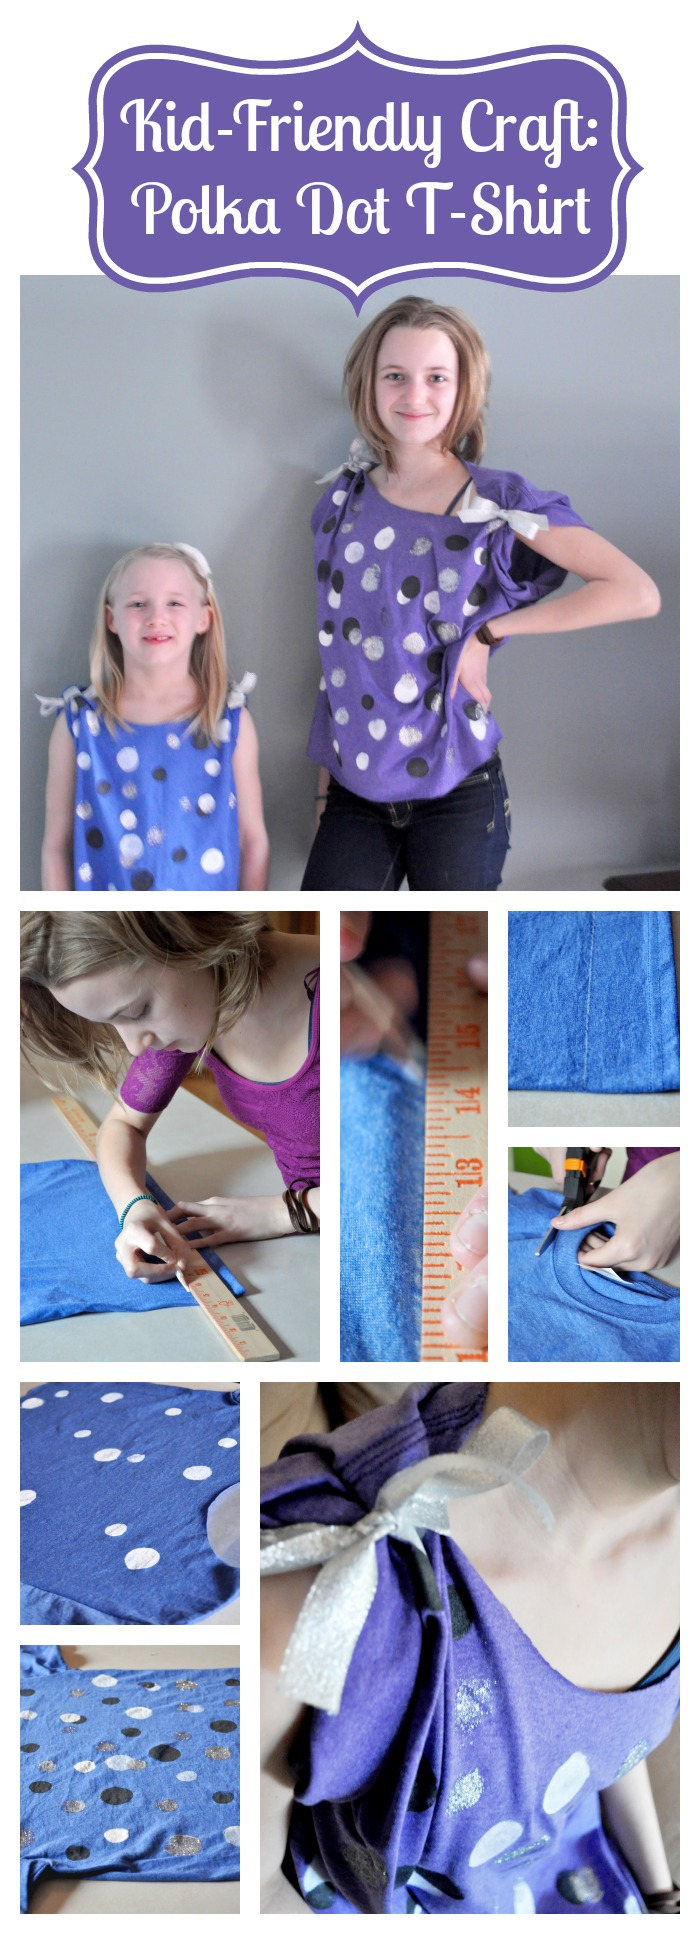 Kid Friendly Craft: Painted Polka Dot T-Shirt